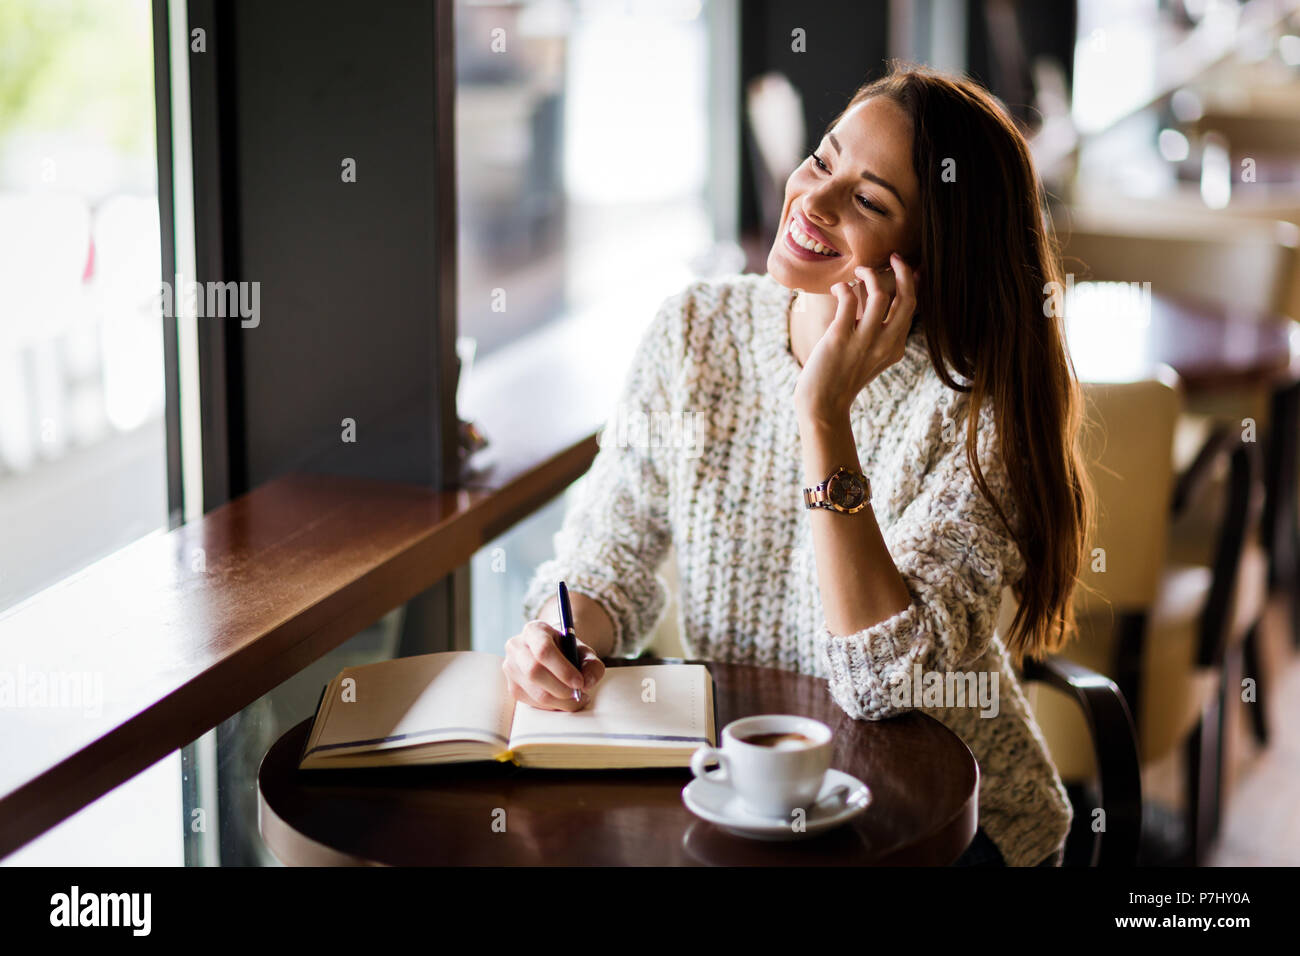 Portrait of happy young woman in cafe - Stock Image